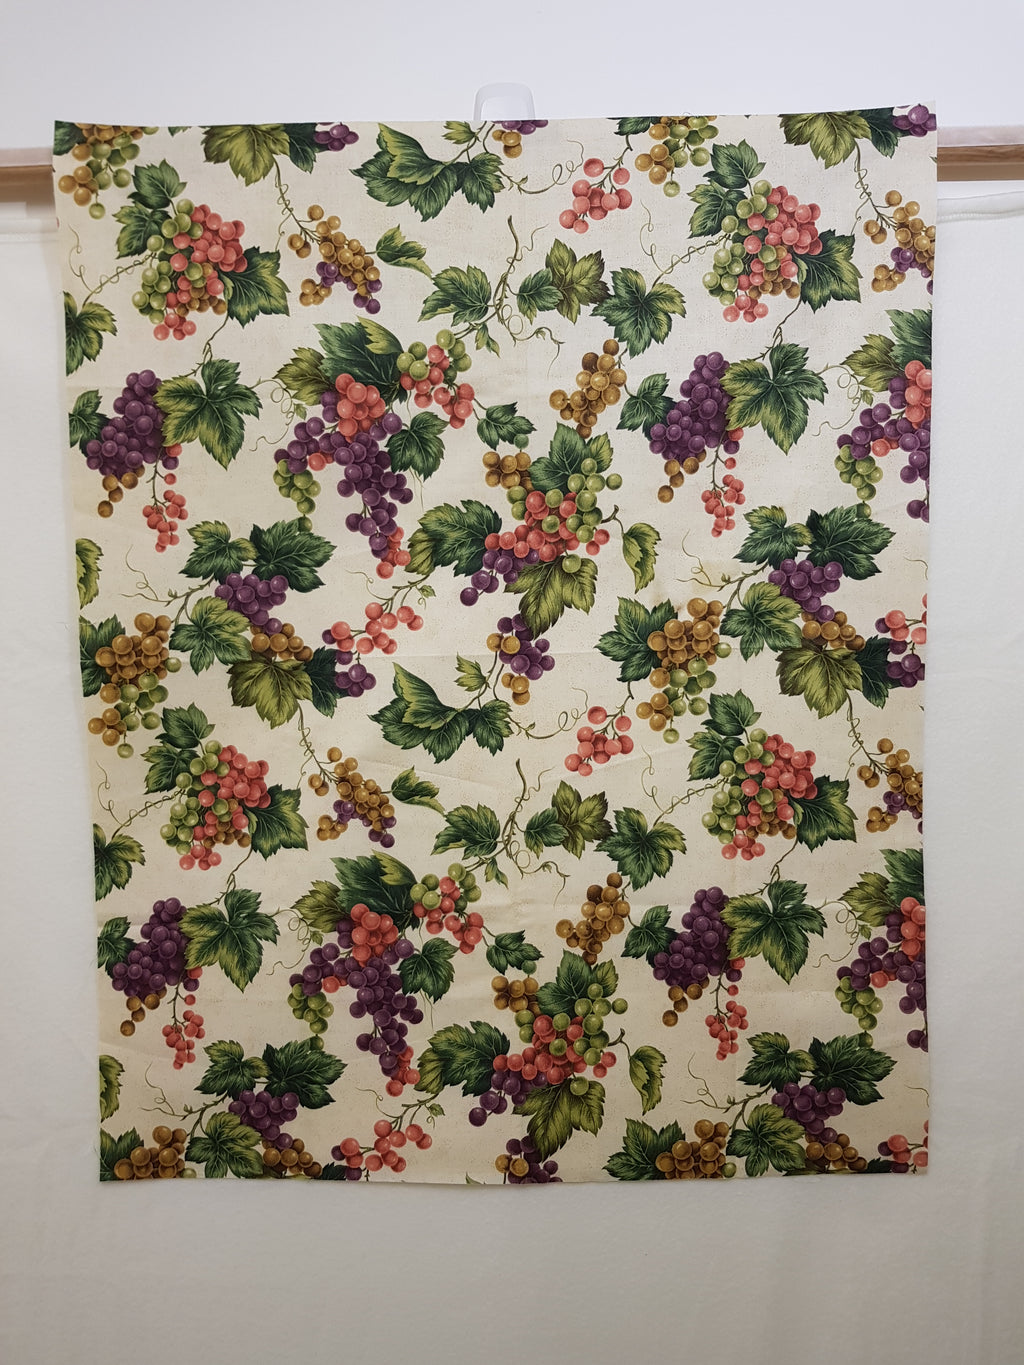 Large Grapevine on Cream/Beige Fabric (35x28cm) - Lori's Fabrics & Quilts